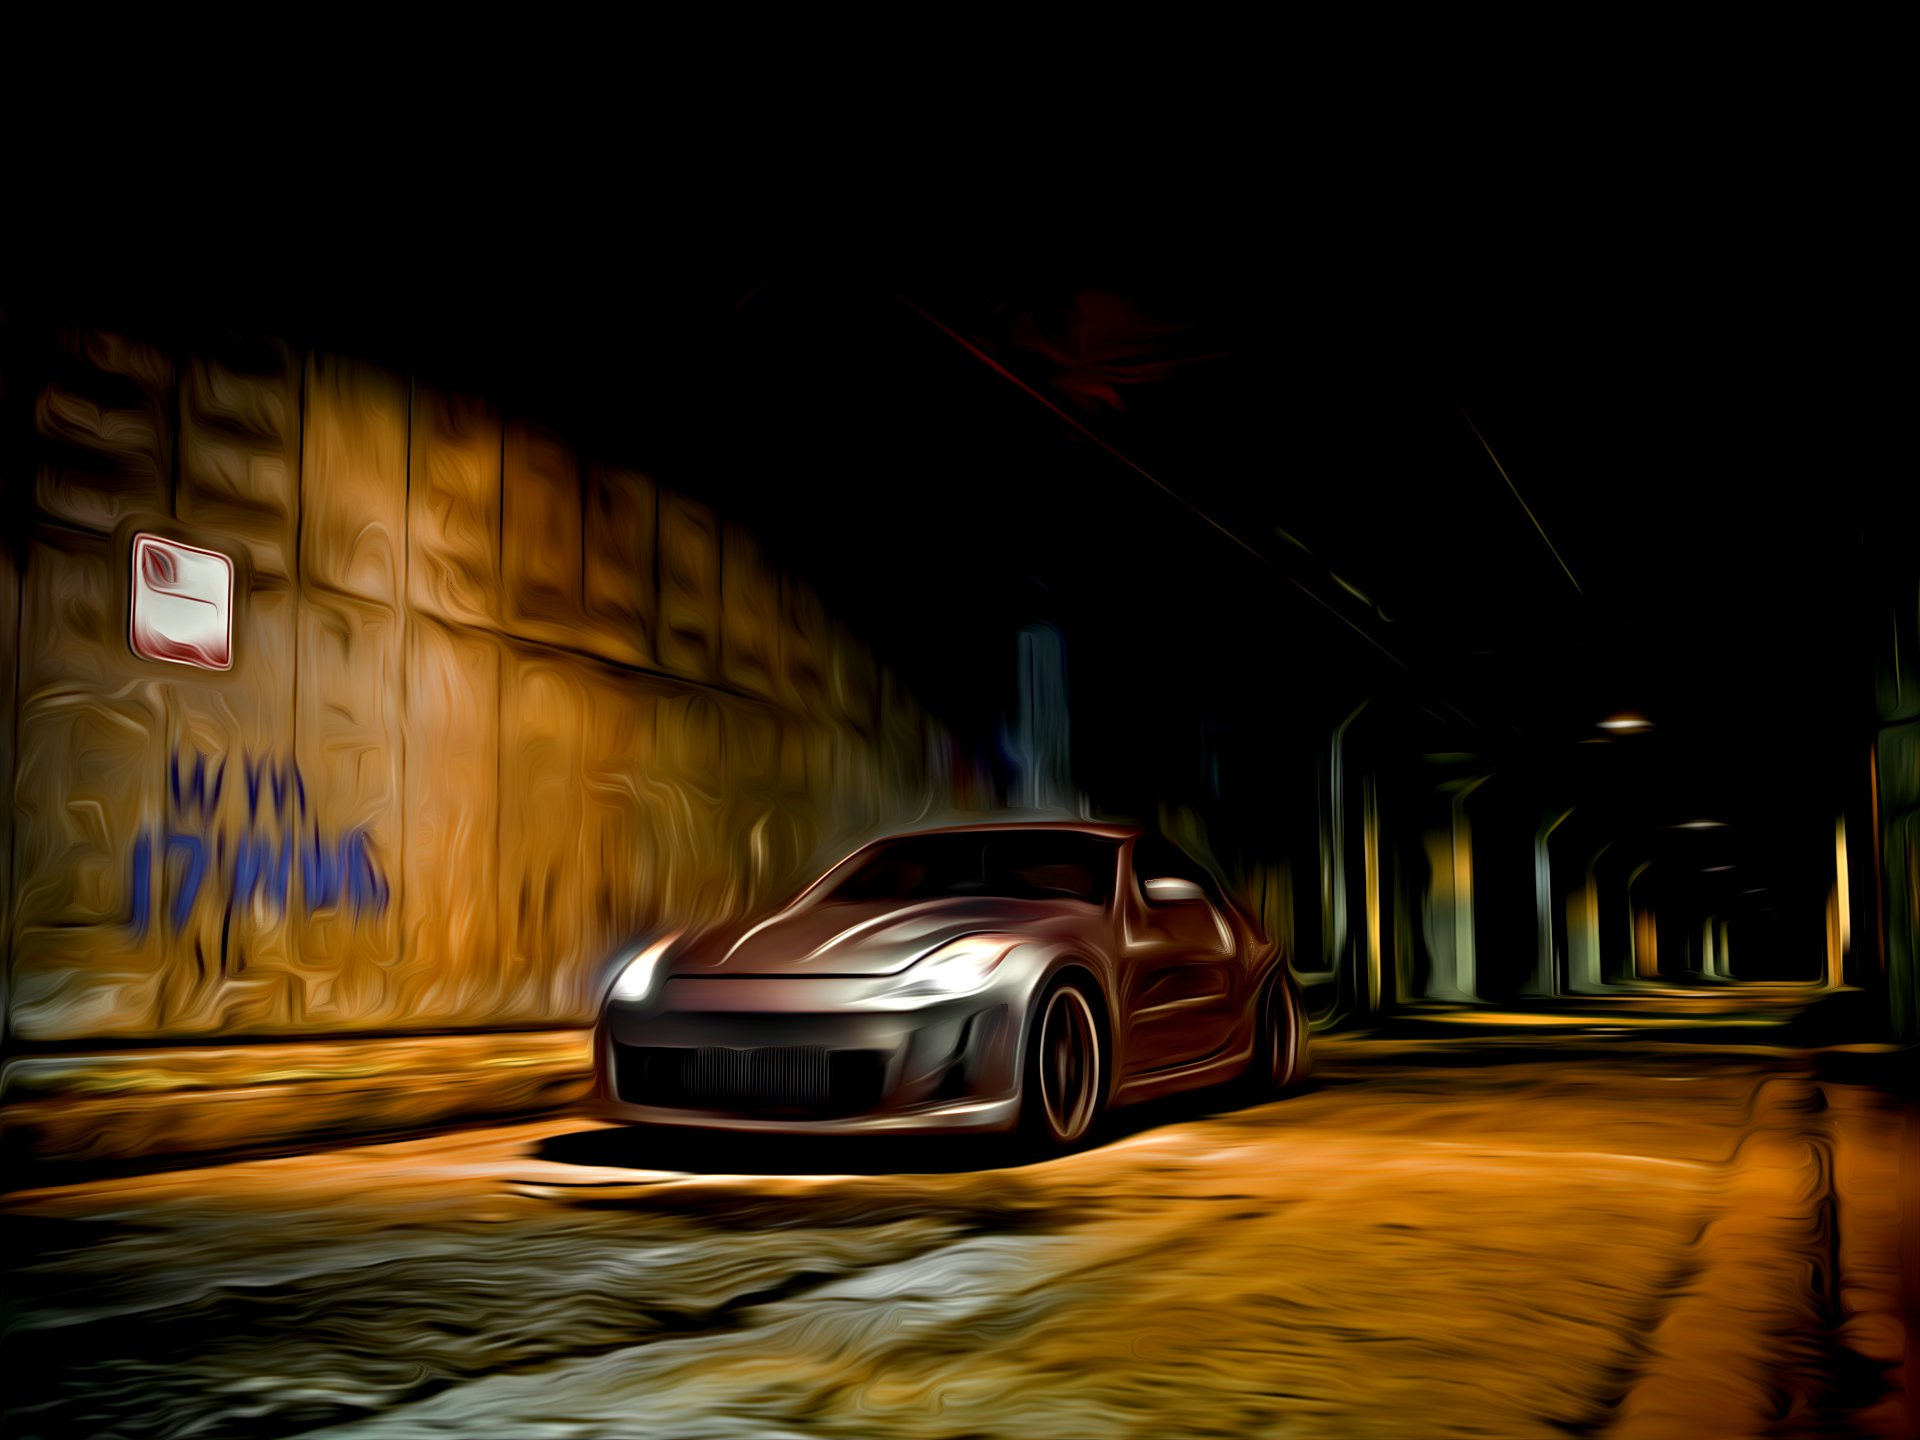 Vehicles - Nissan  Nissan 350Z Wallpaper